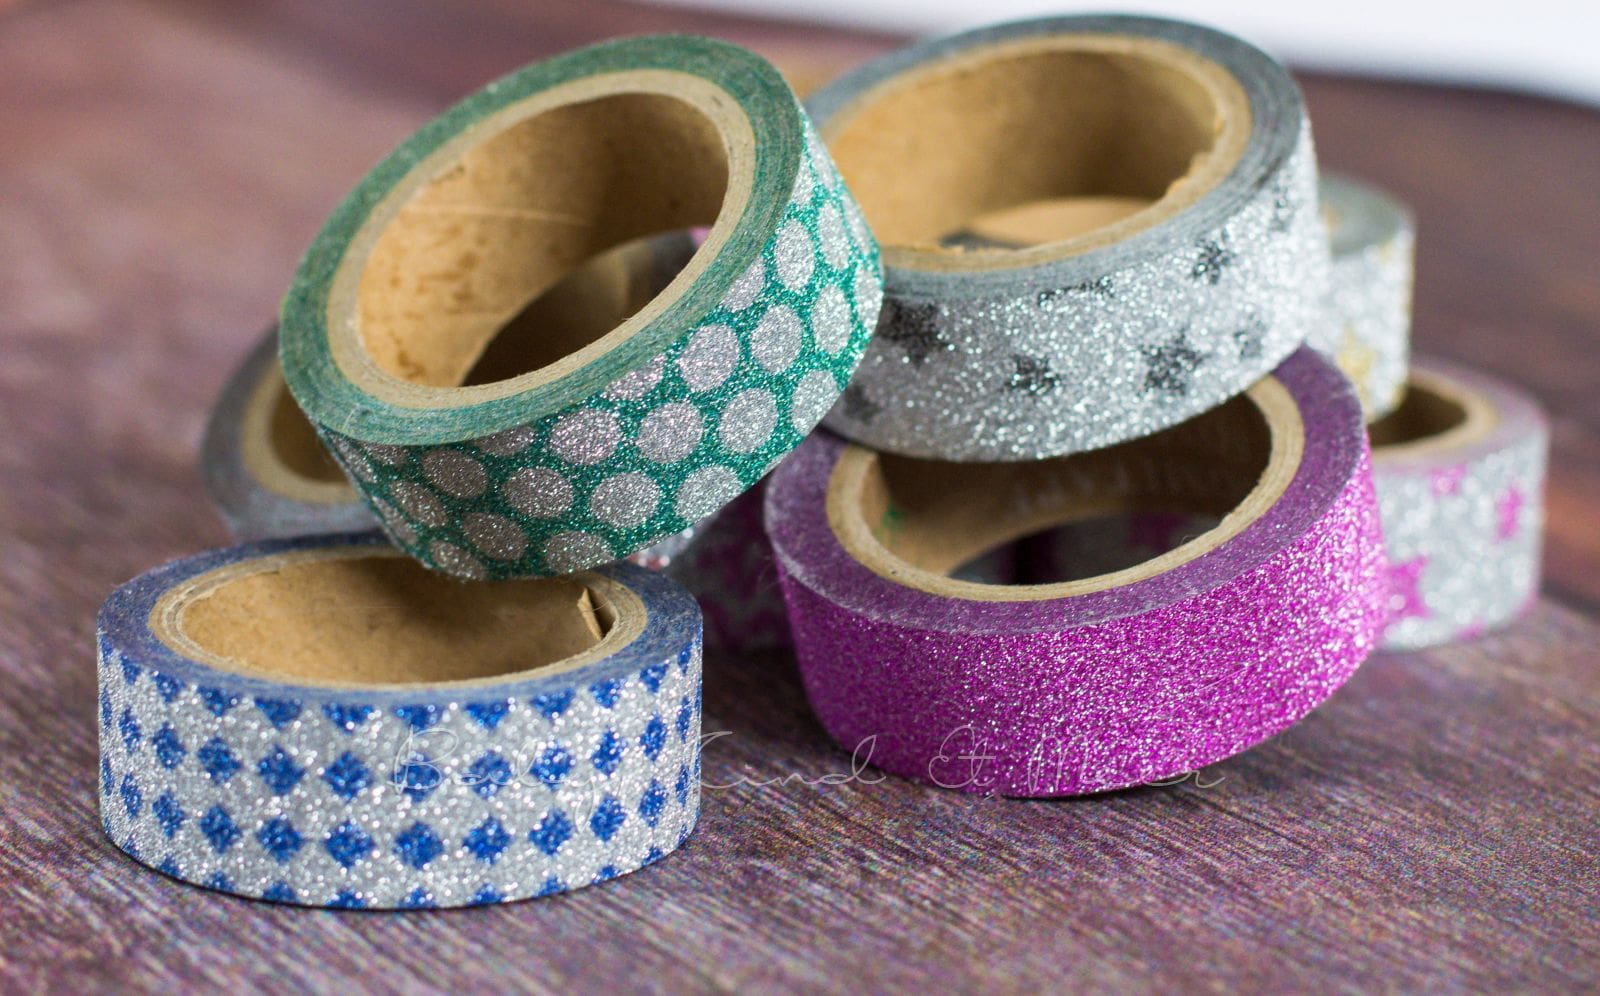 10 Bastelideen Mit Washi Tape Diy Inspirationen Baby Kind Und Meer